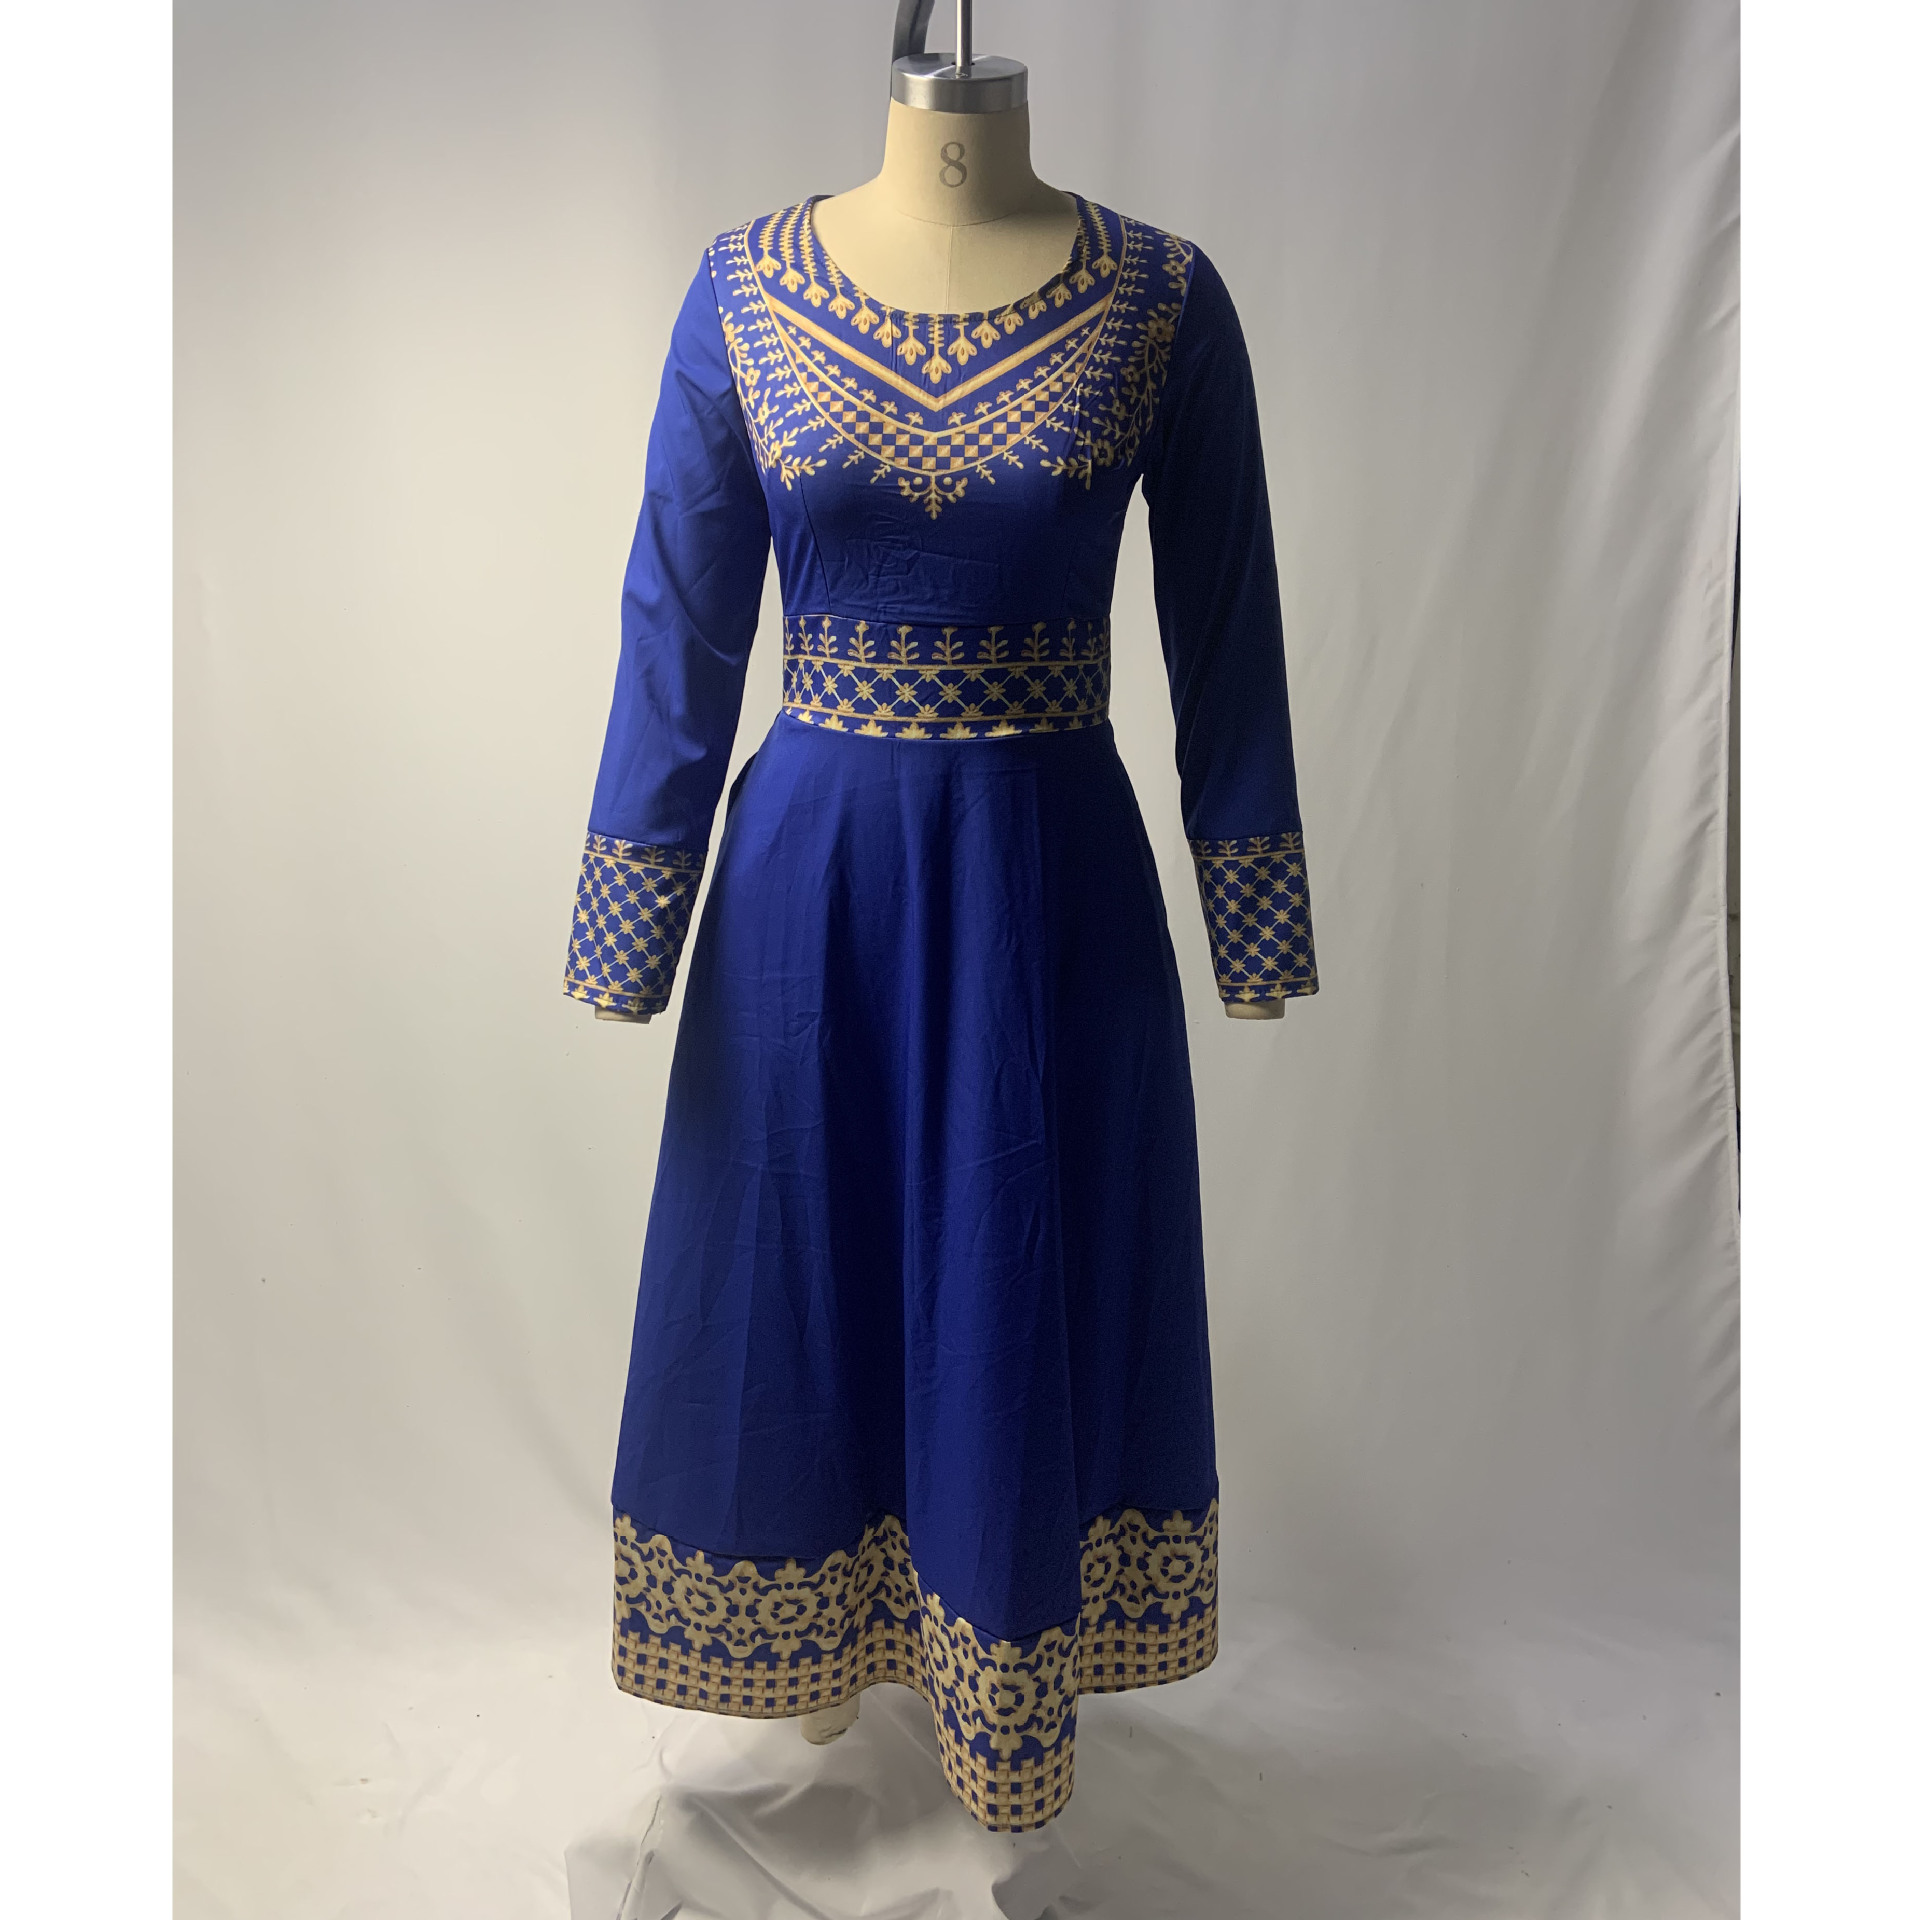 Women's Evening Dress